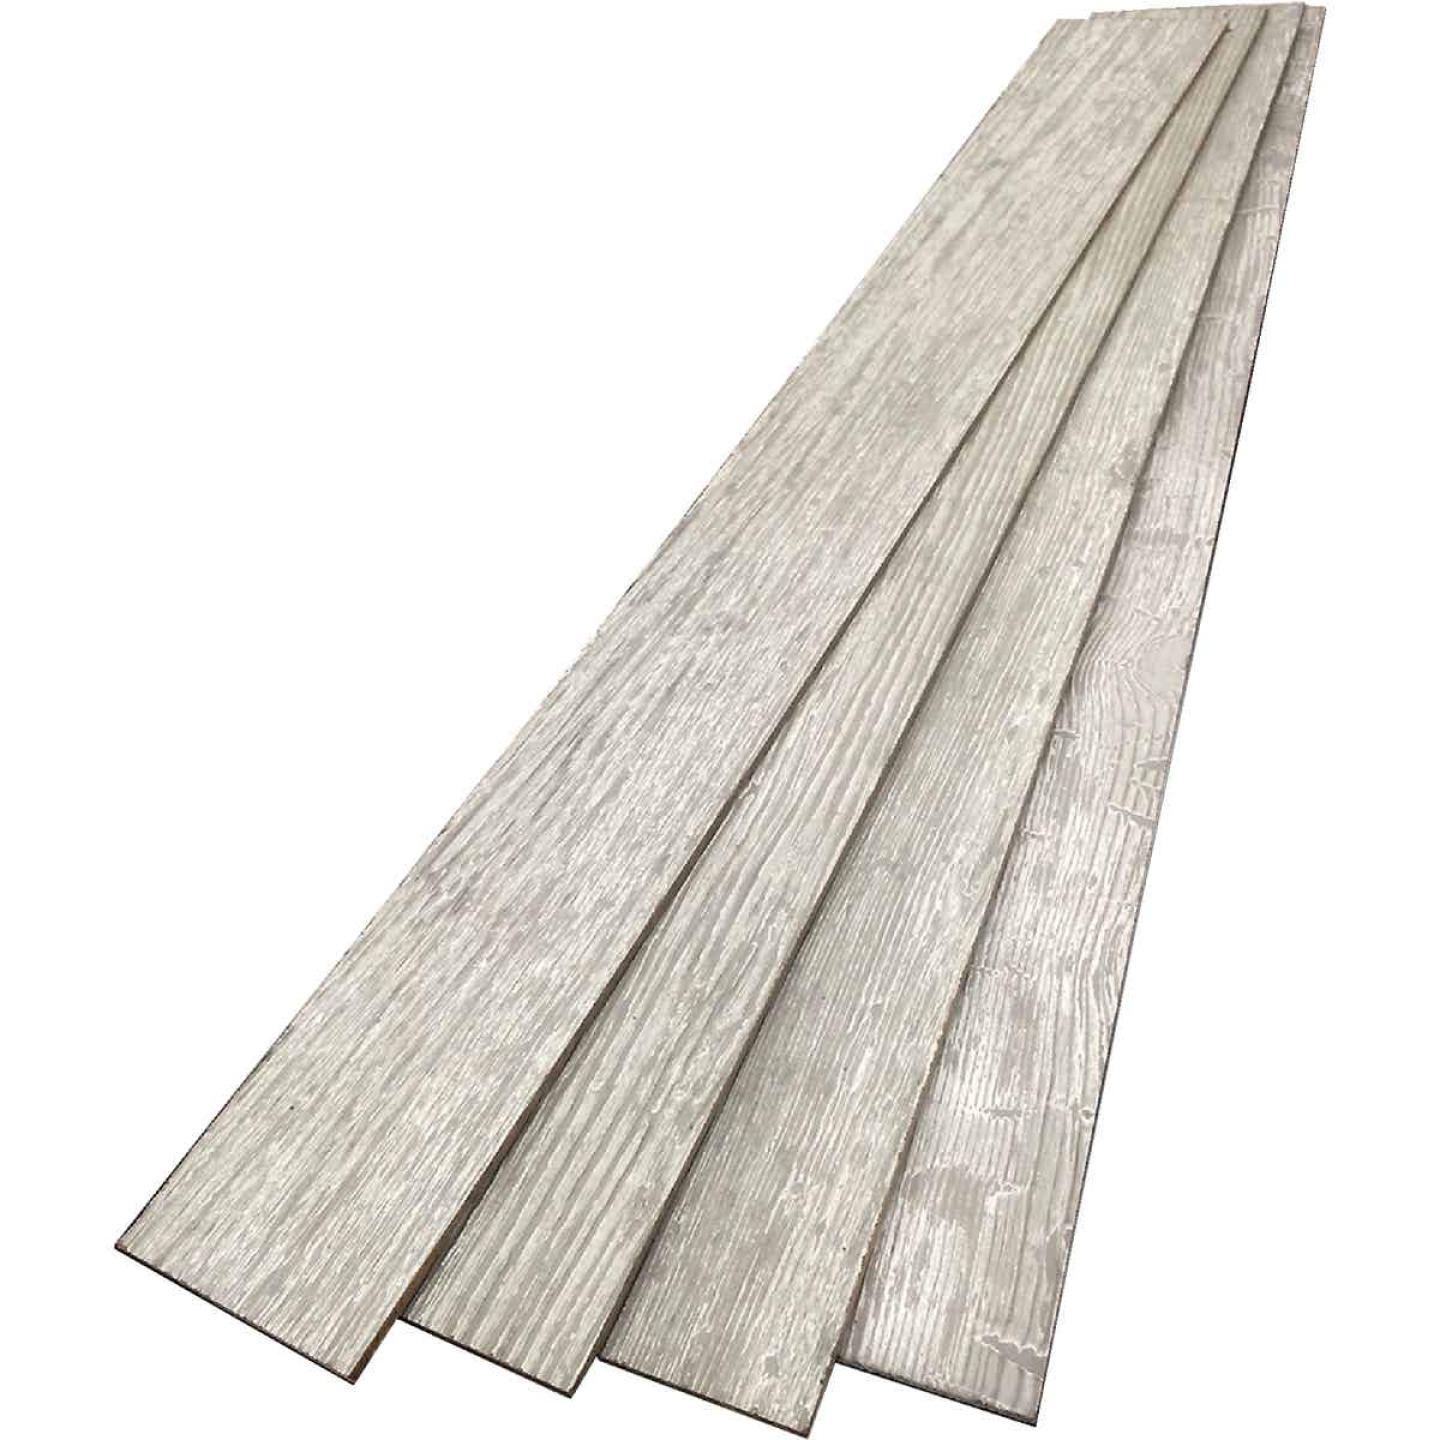 DPI 6 In. W. x 48 In. L. x 1/4 In. Thick Pewter Gray Rustic Wall Plank (12-Pack) Image 3